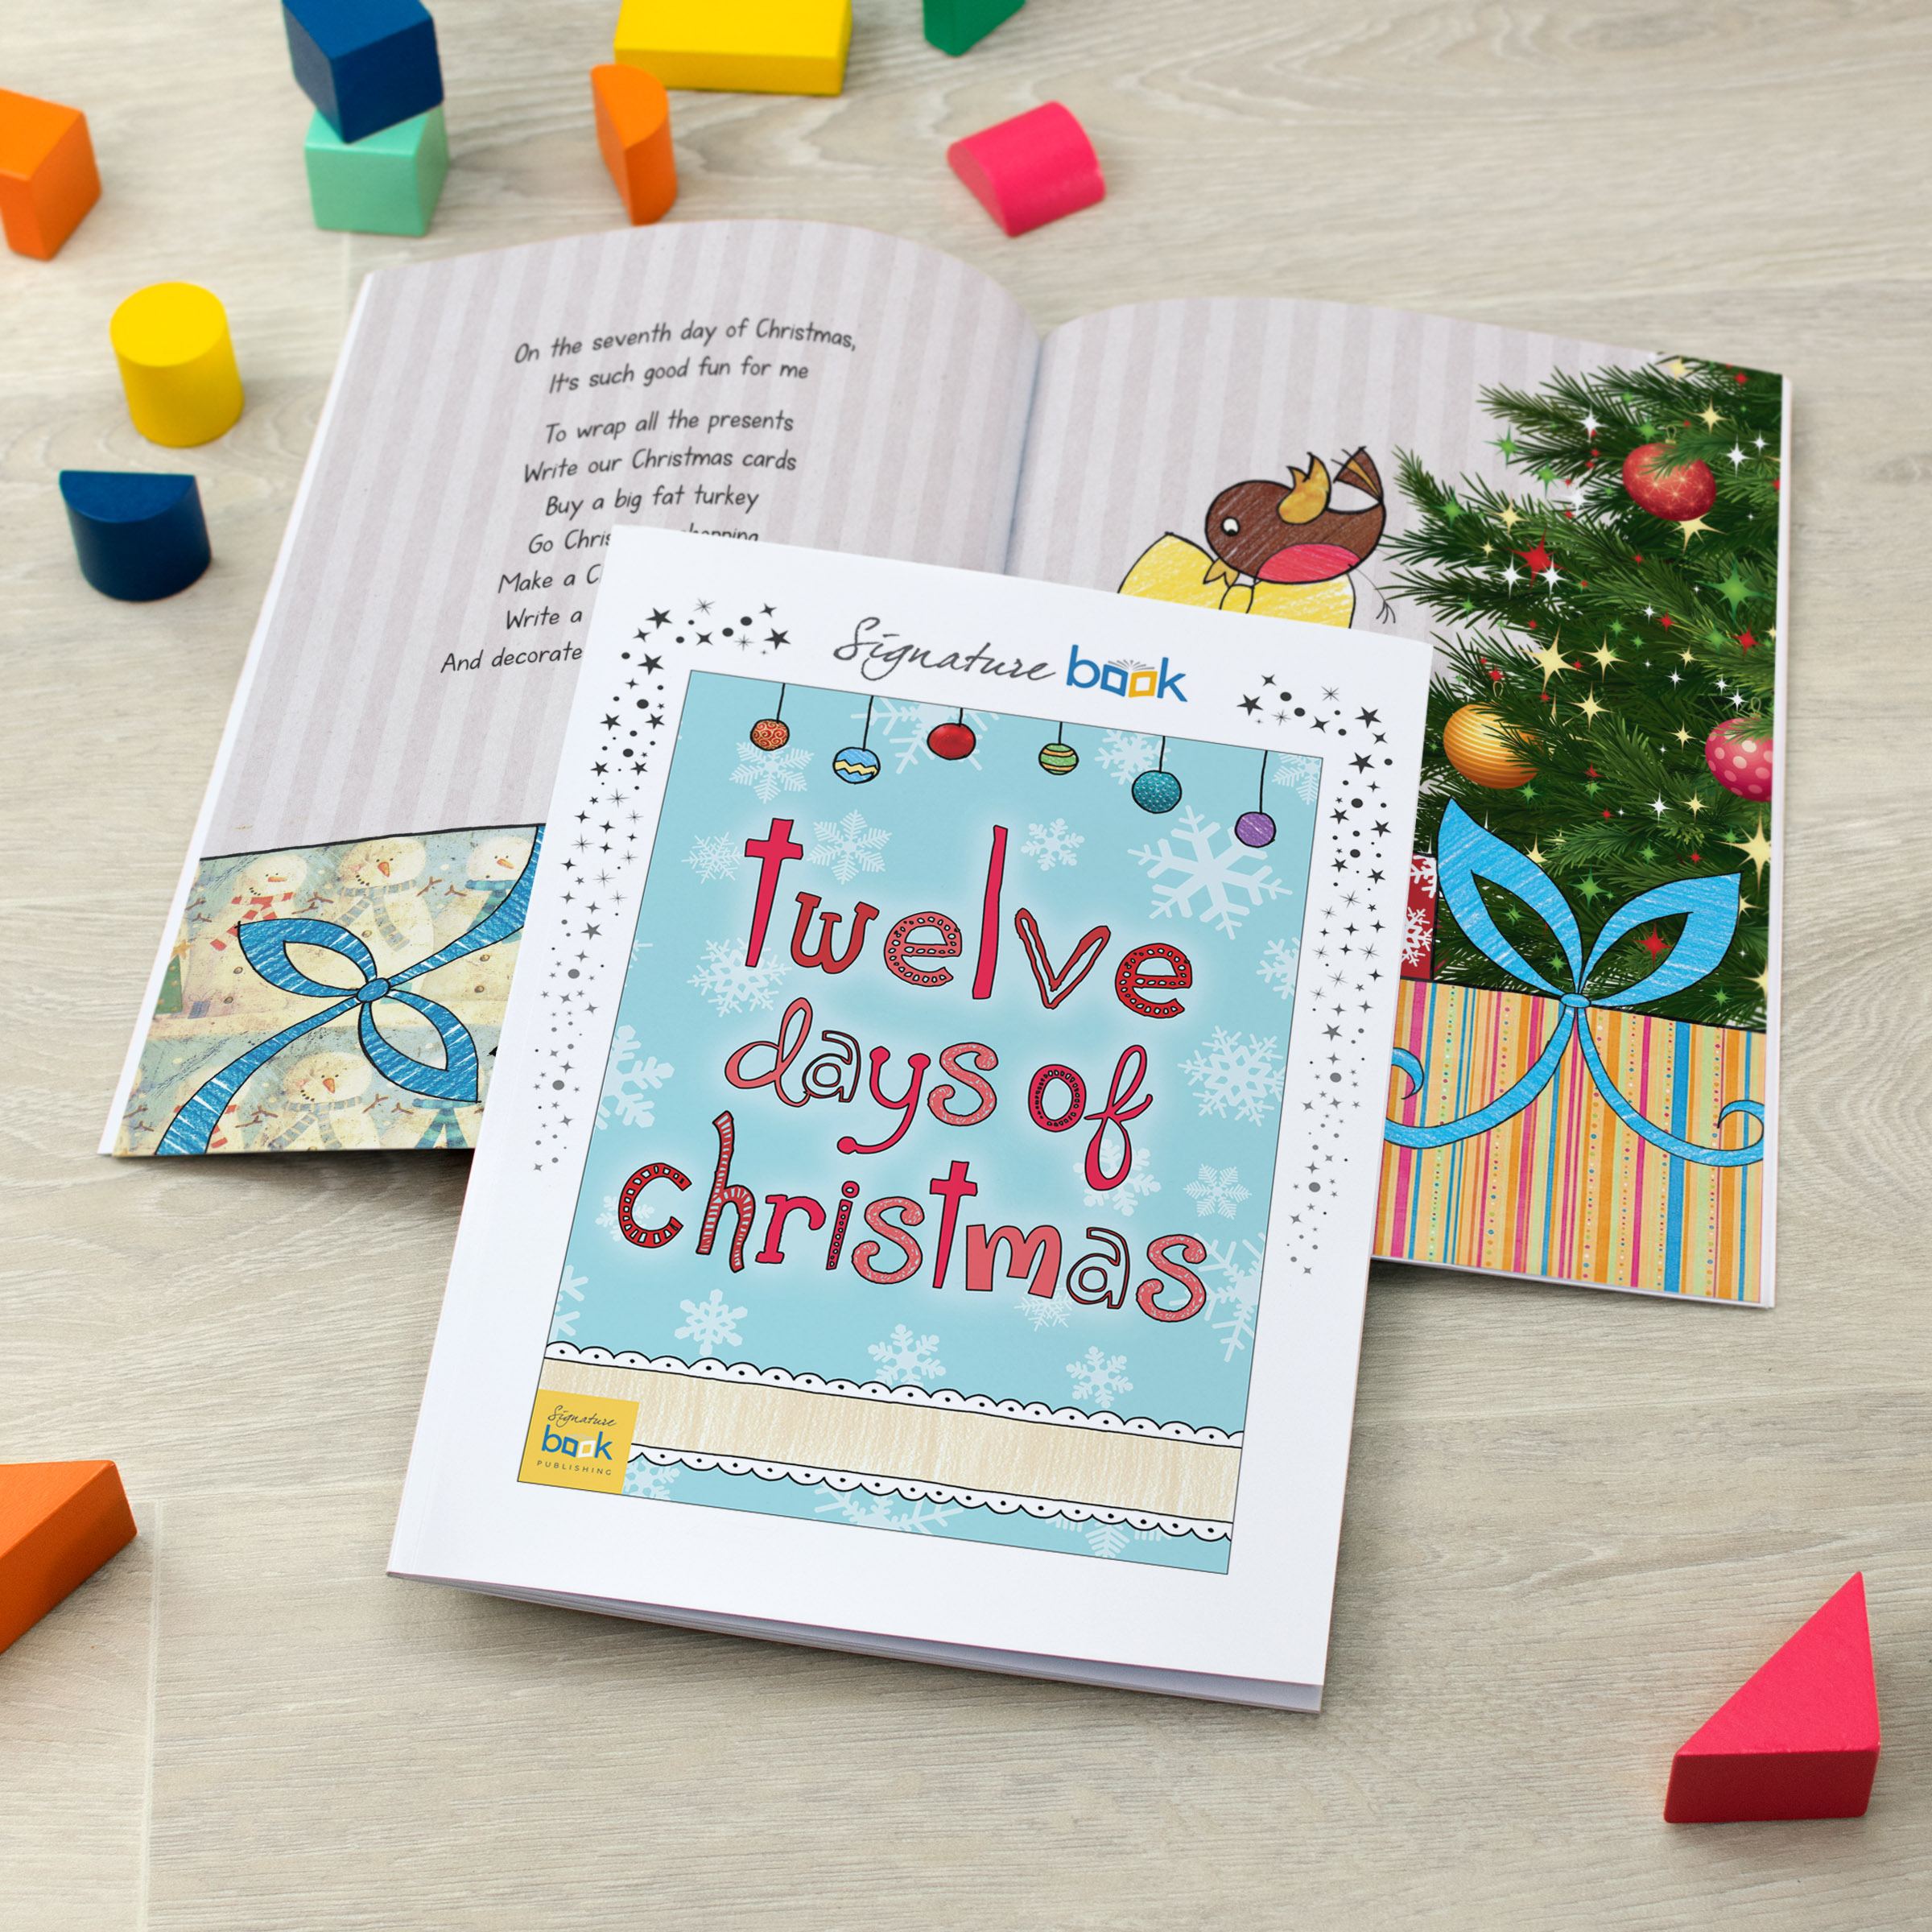 12 Days Of Christmas Gifts.Personalised 12 Days Of Christmas Book Signature Favourite